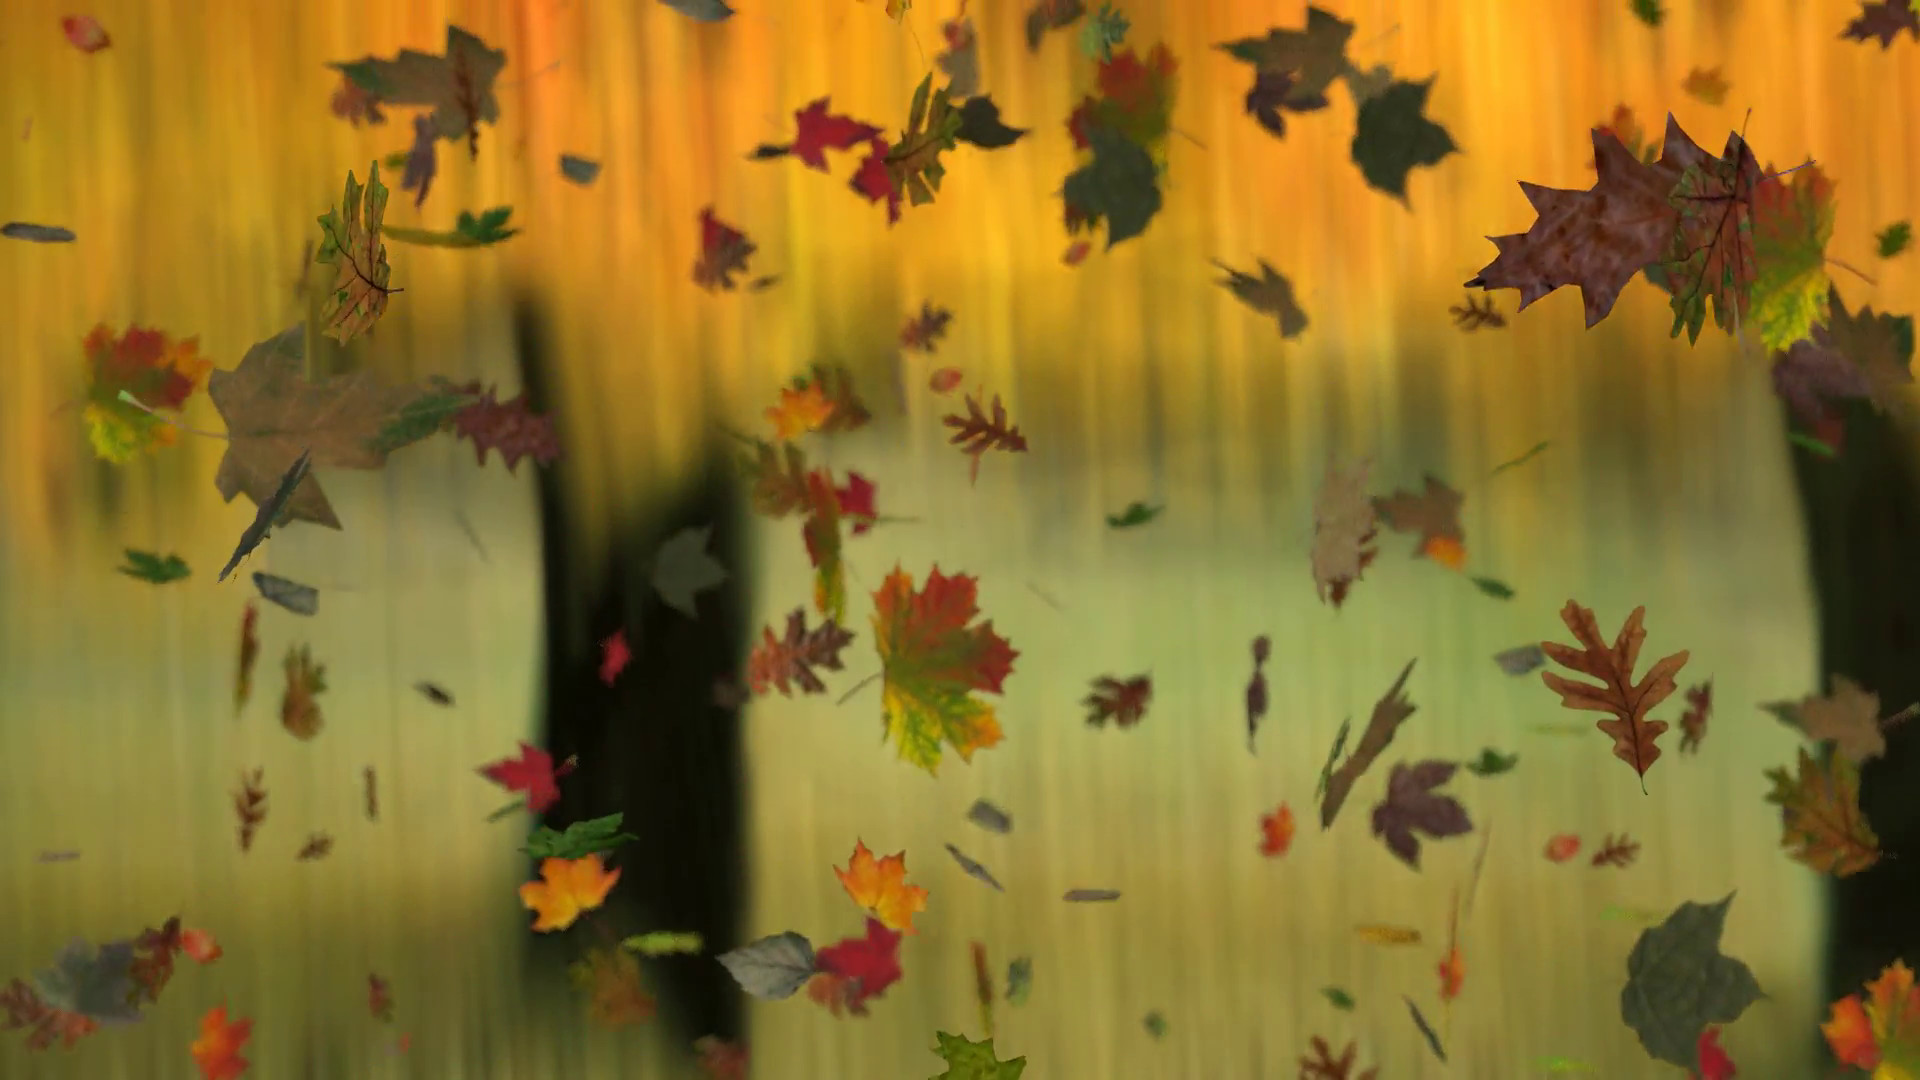 Autumn Tree Leaf Fall Animated Wallpaper Fall Leaves Backgrounds 183 ① Wallpapertag